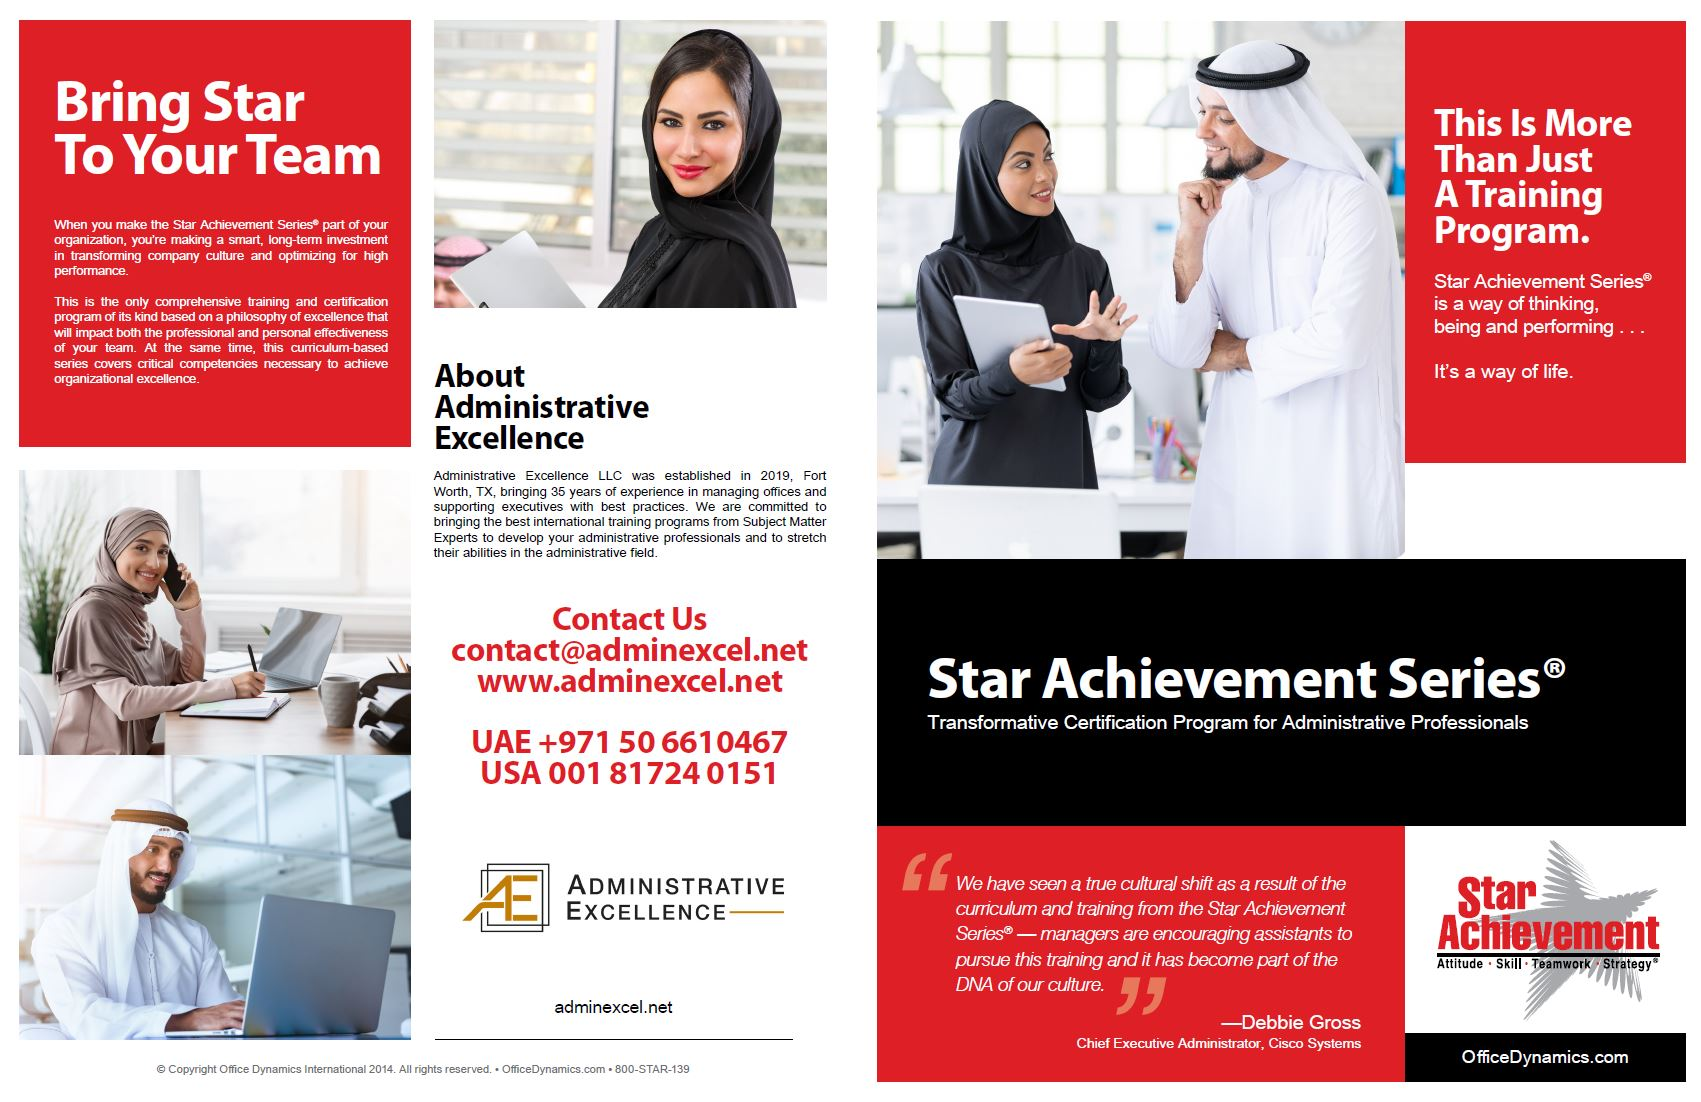 The Star Achievement Series® Page 1